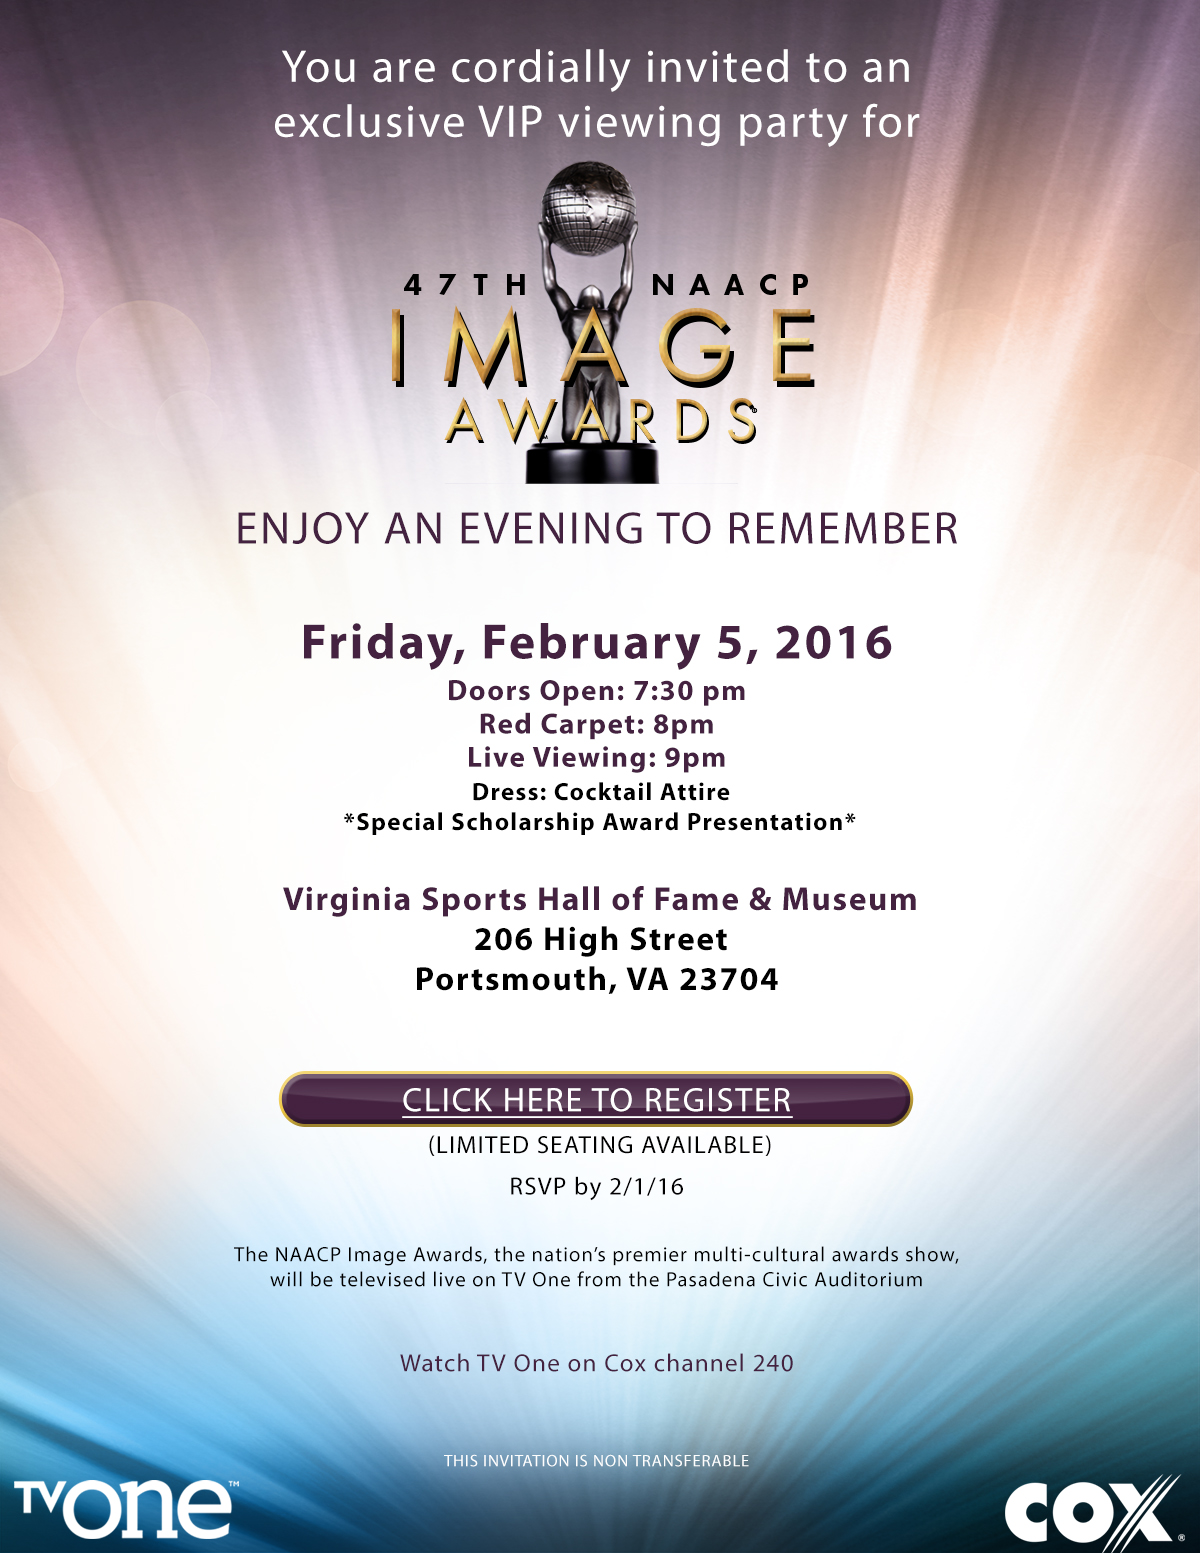 Cox to Host NAACP Image Awards Watch Party